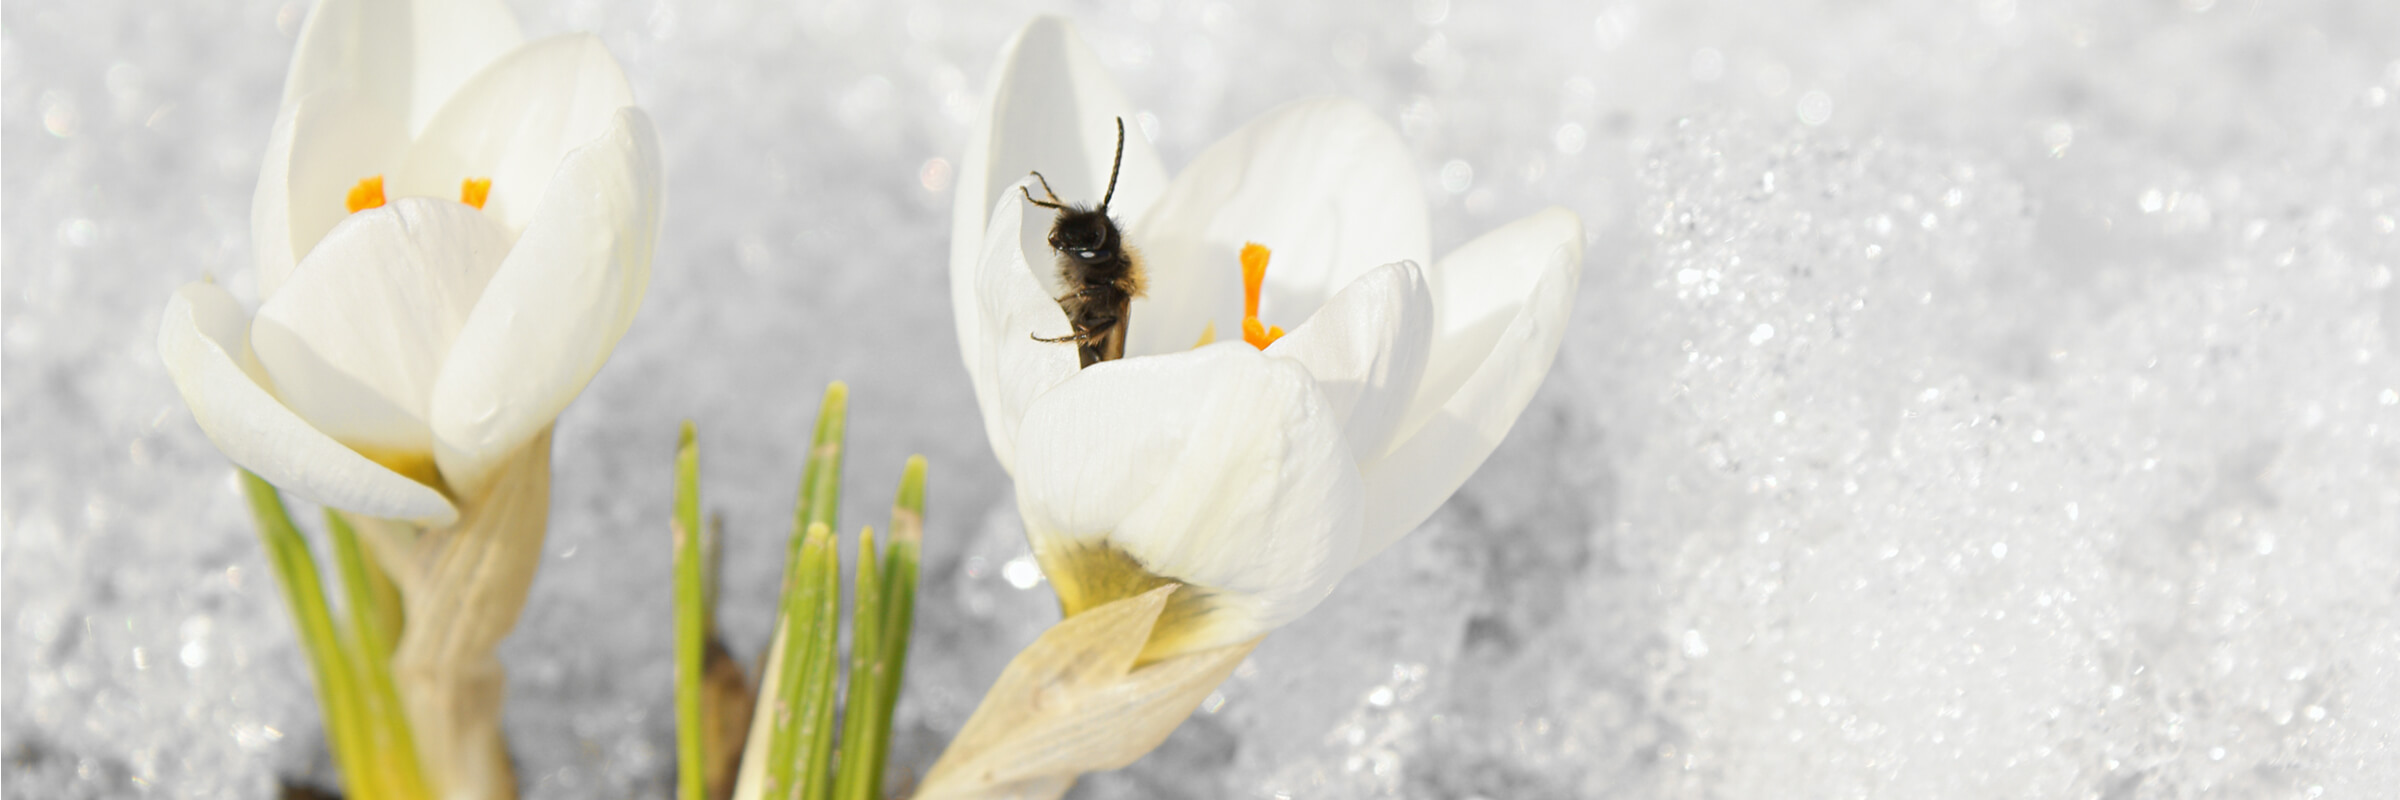 Bee visiting a crocus, one of the few flowers to bloom in early spring